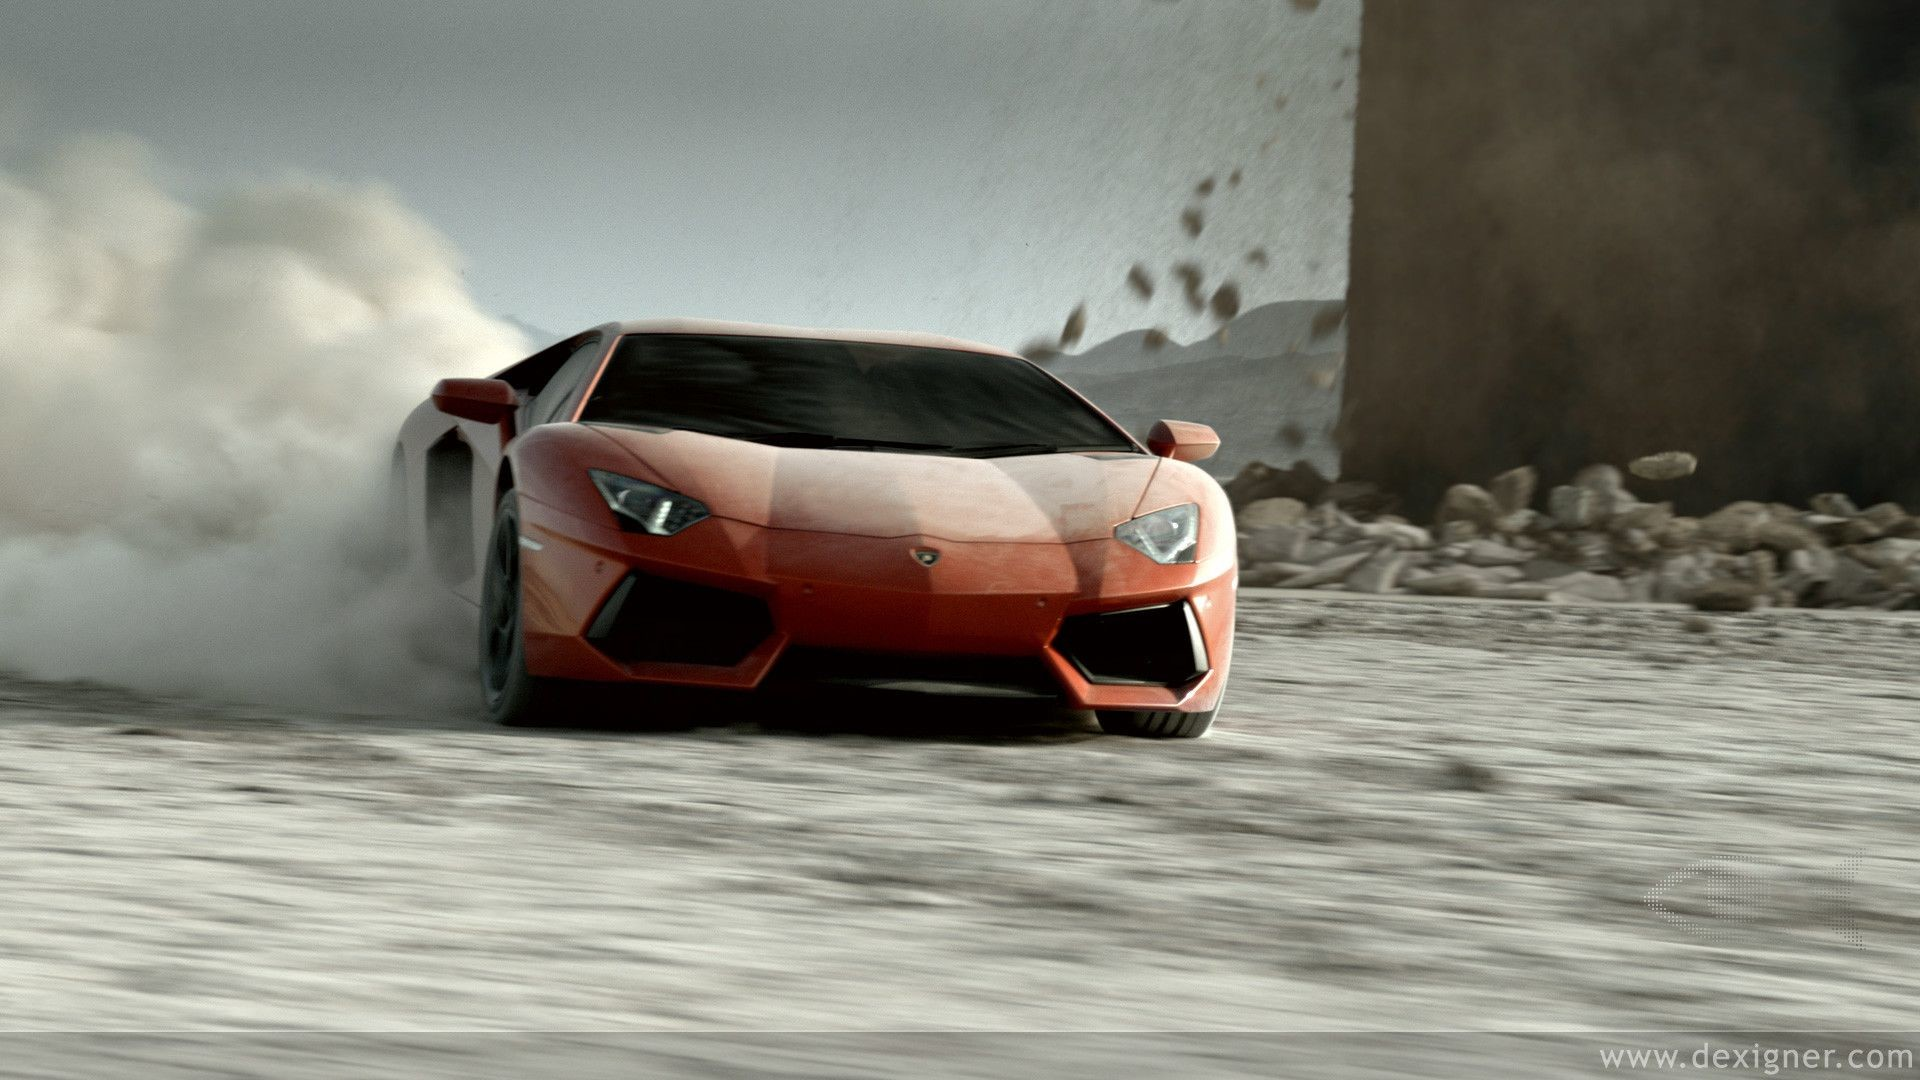 1920x1080 Lamborghini Top Hd Wallpapers Worldcricketevents Free Download